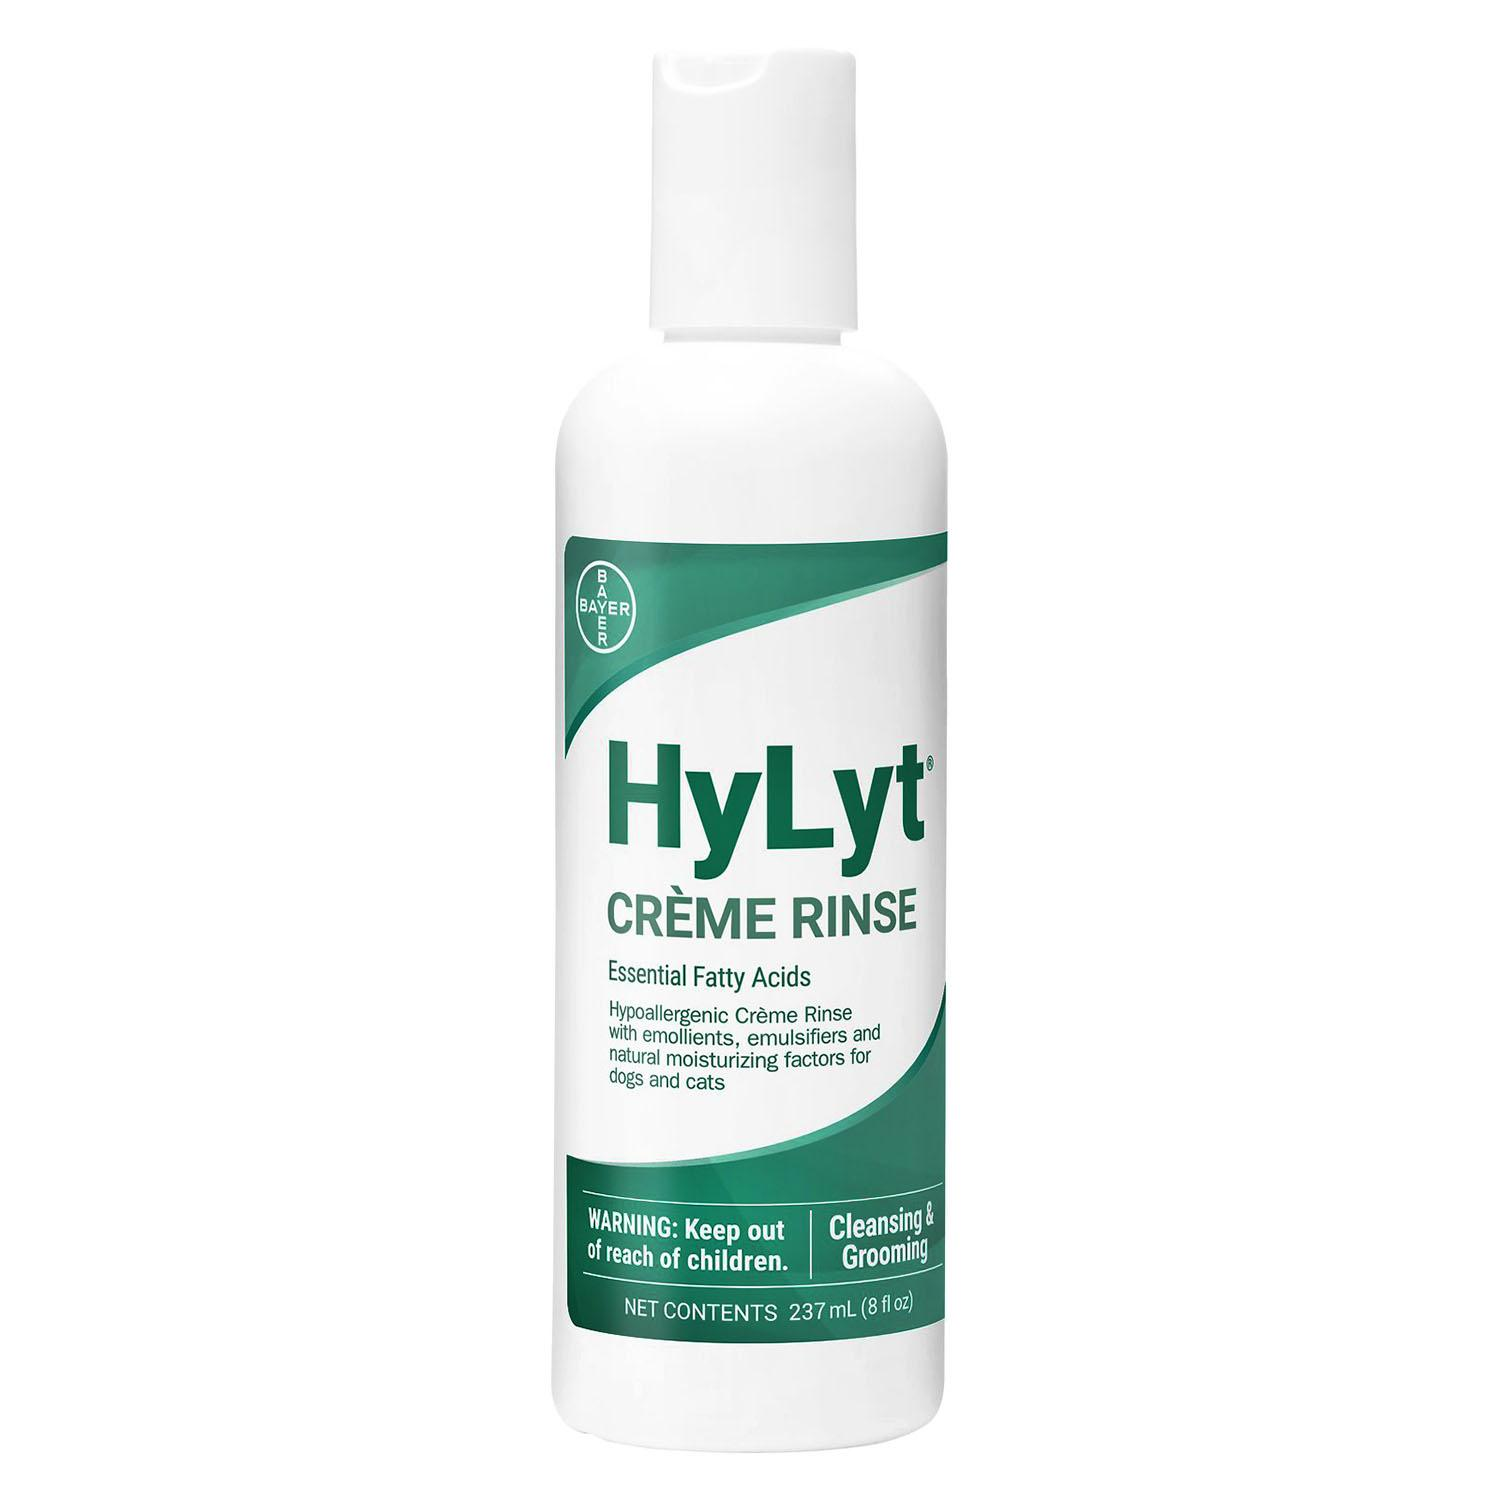 Bayer HyLyt Moisturizing Creme Rinse for Dogs and Cats